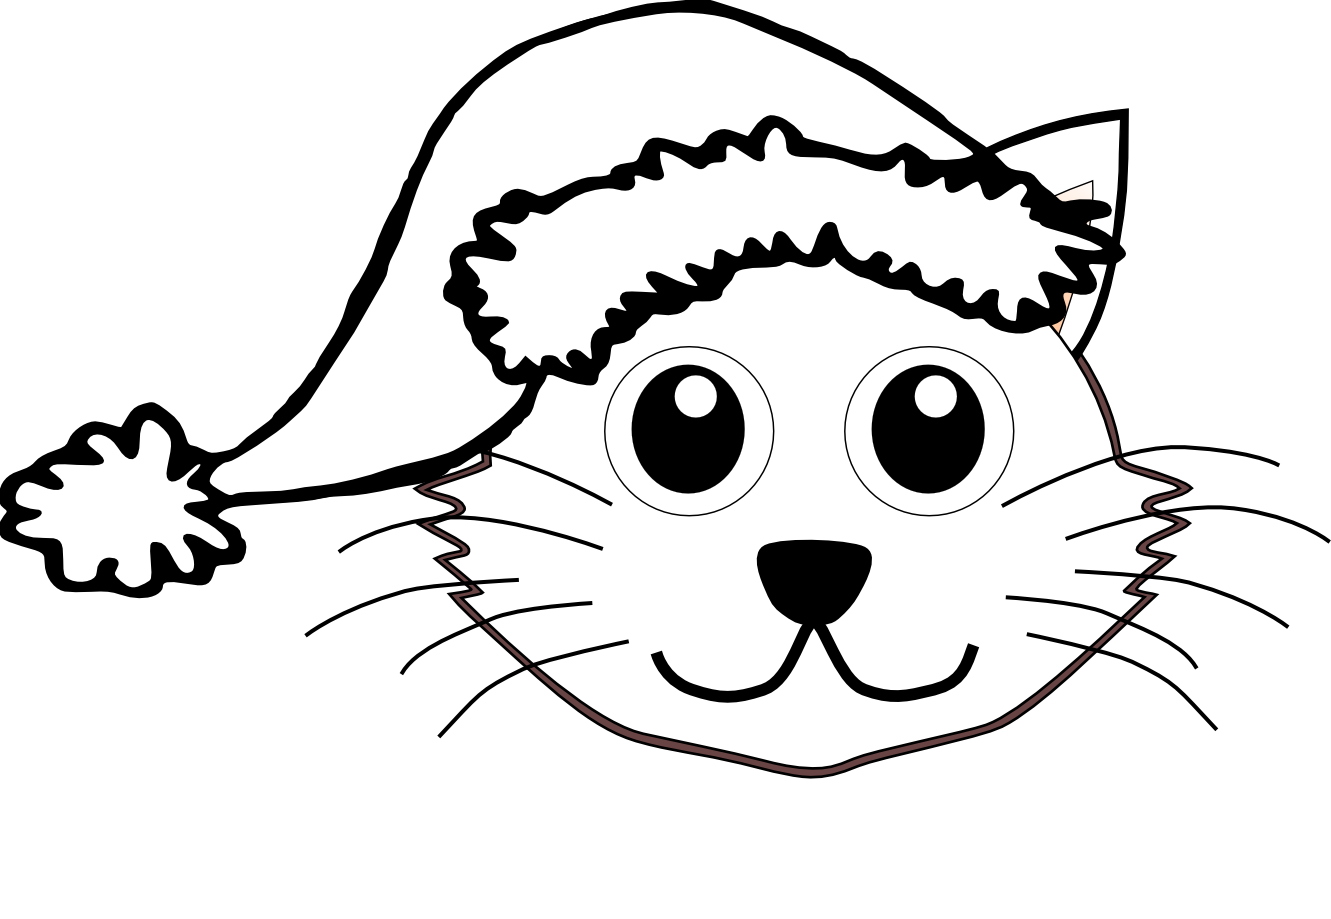 Cat Hat Coloring Pages Printable - Colorine.net | #26117 - Coloring Home